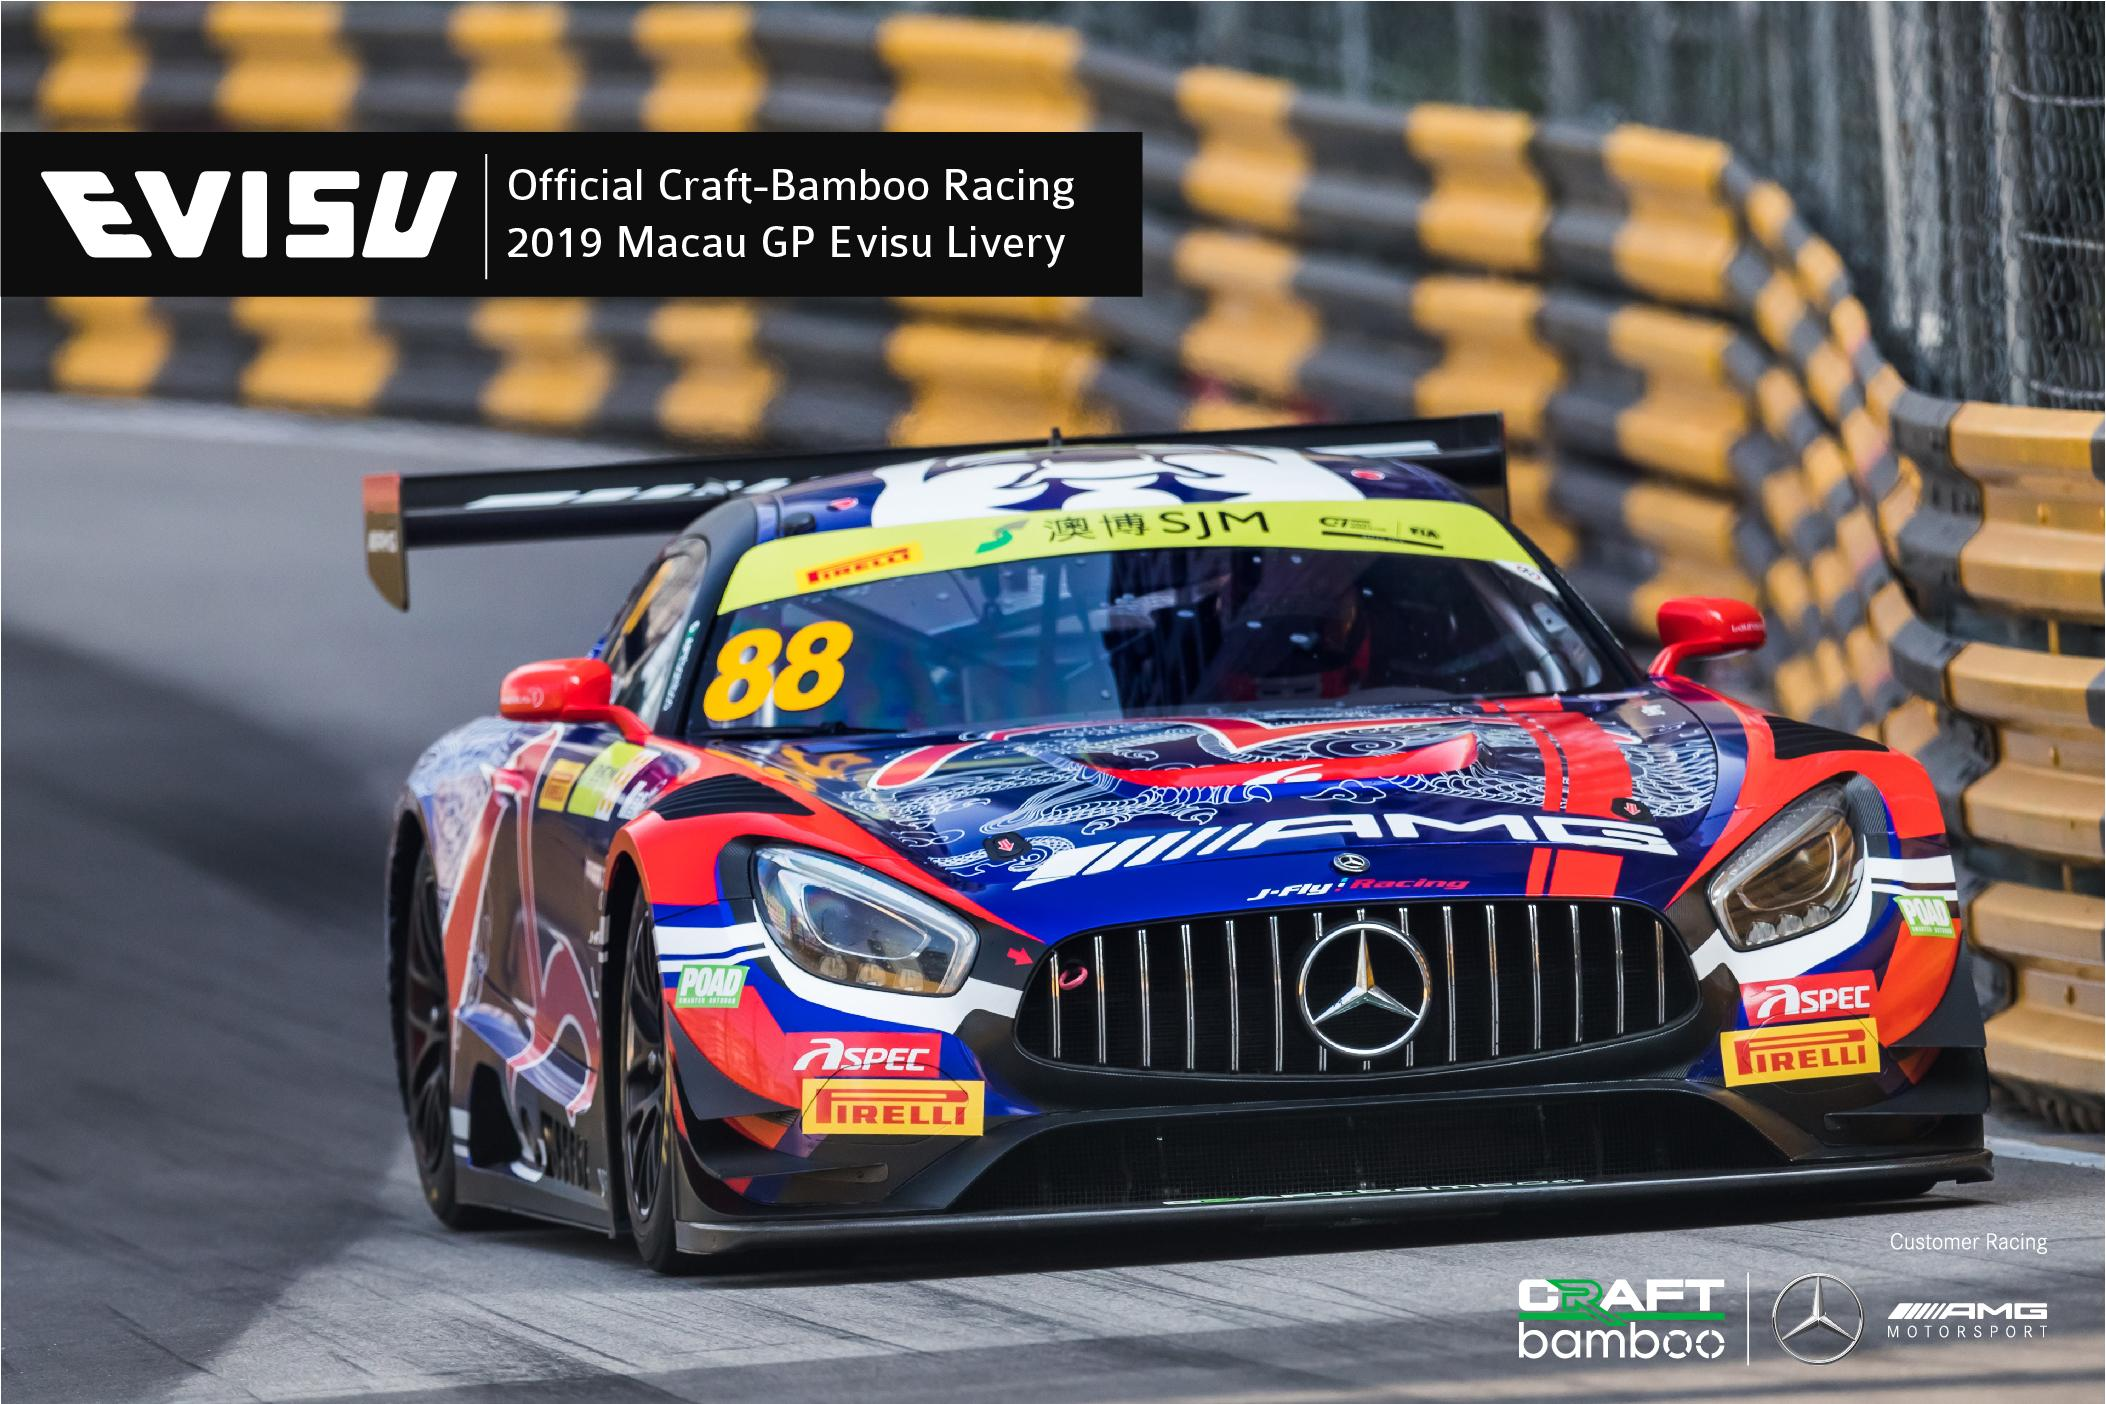 Preview of Official Craft-Bamboo Racing - 2019 Macau GP Evisu Livery by Arthur T.